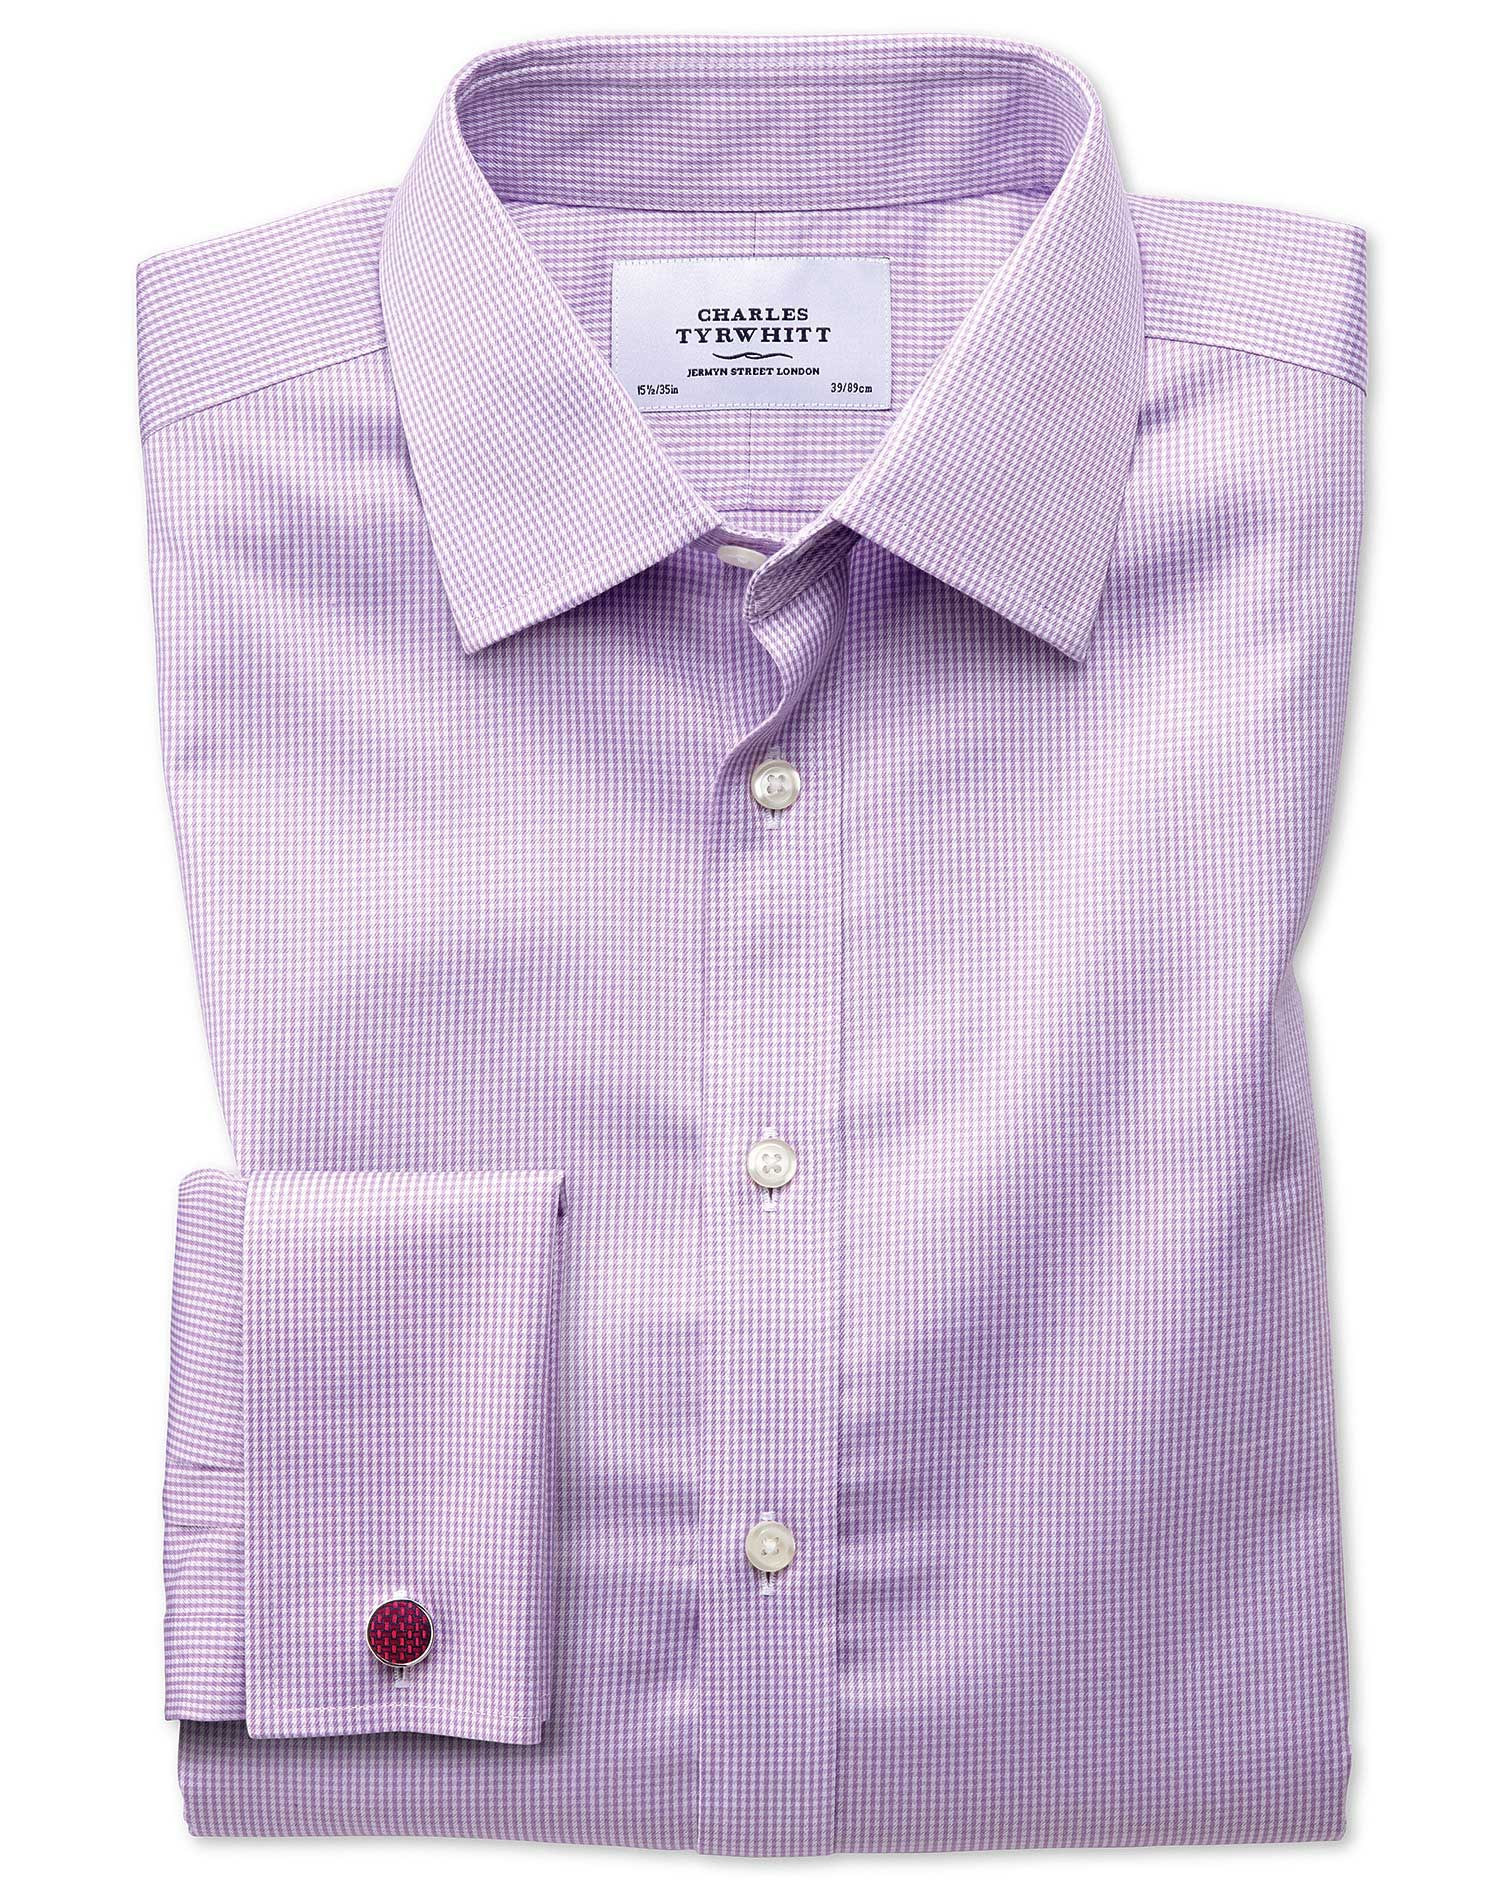 Extra Slim Fit Non-Iron Puppytooth Lilac Cotton Formal Shirt Single Cuff Size 15.5/32 by Charles Tyr